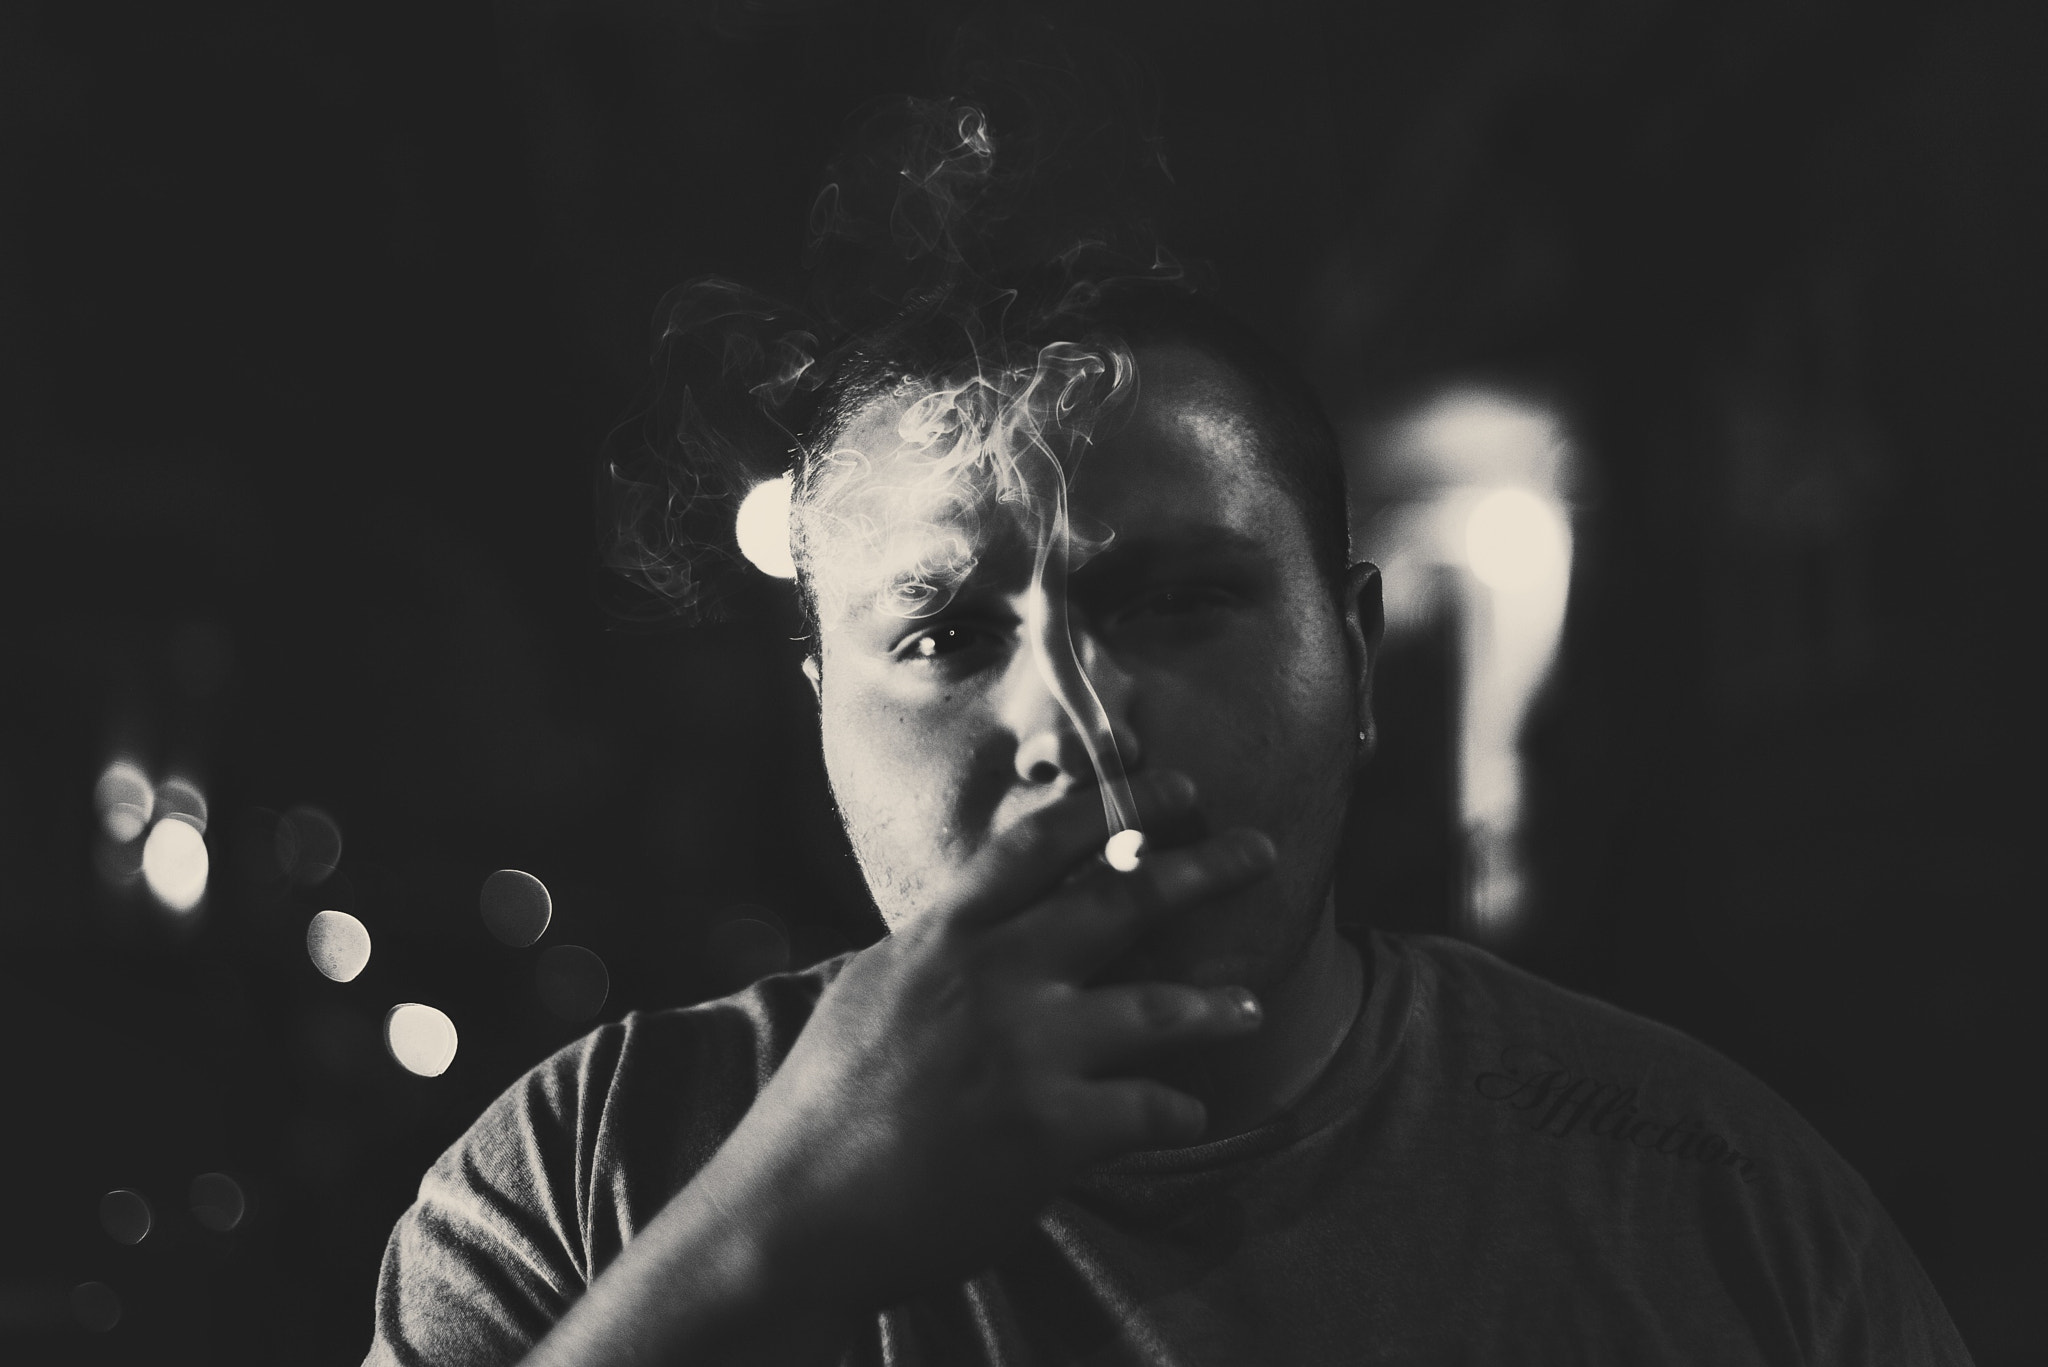 Photograph Smoking by Cody Sanfilippo on 500px